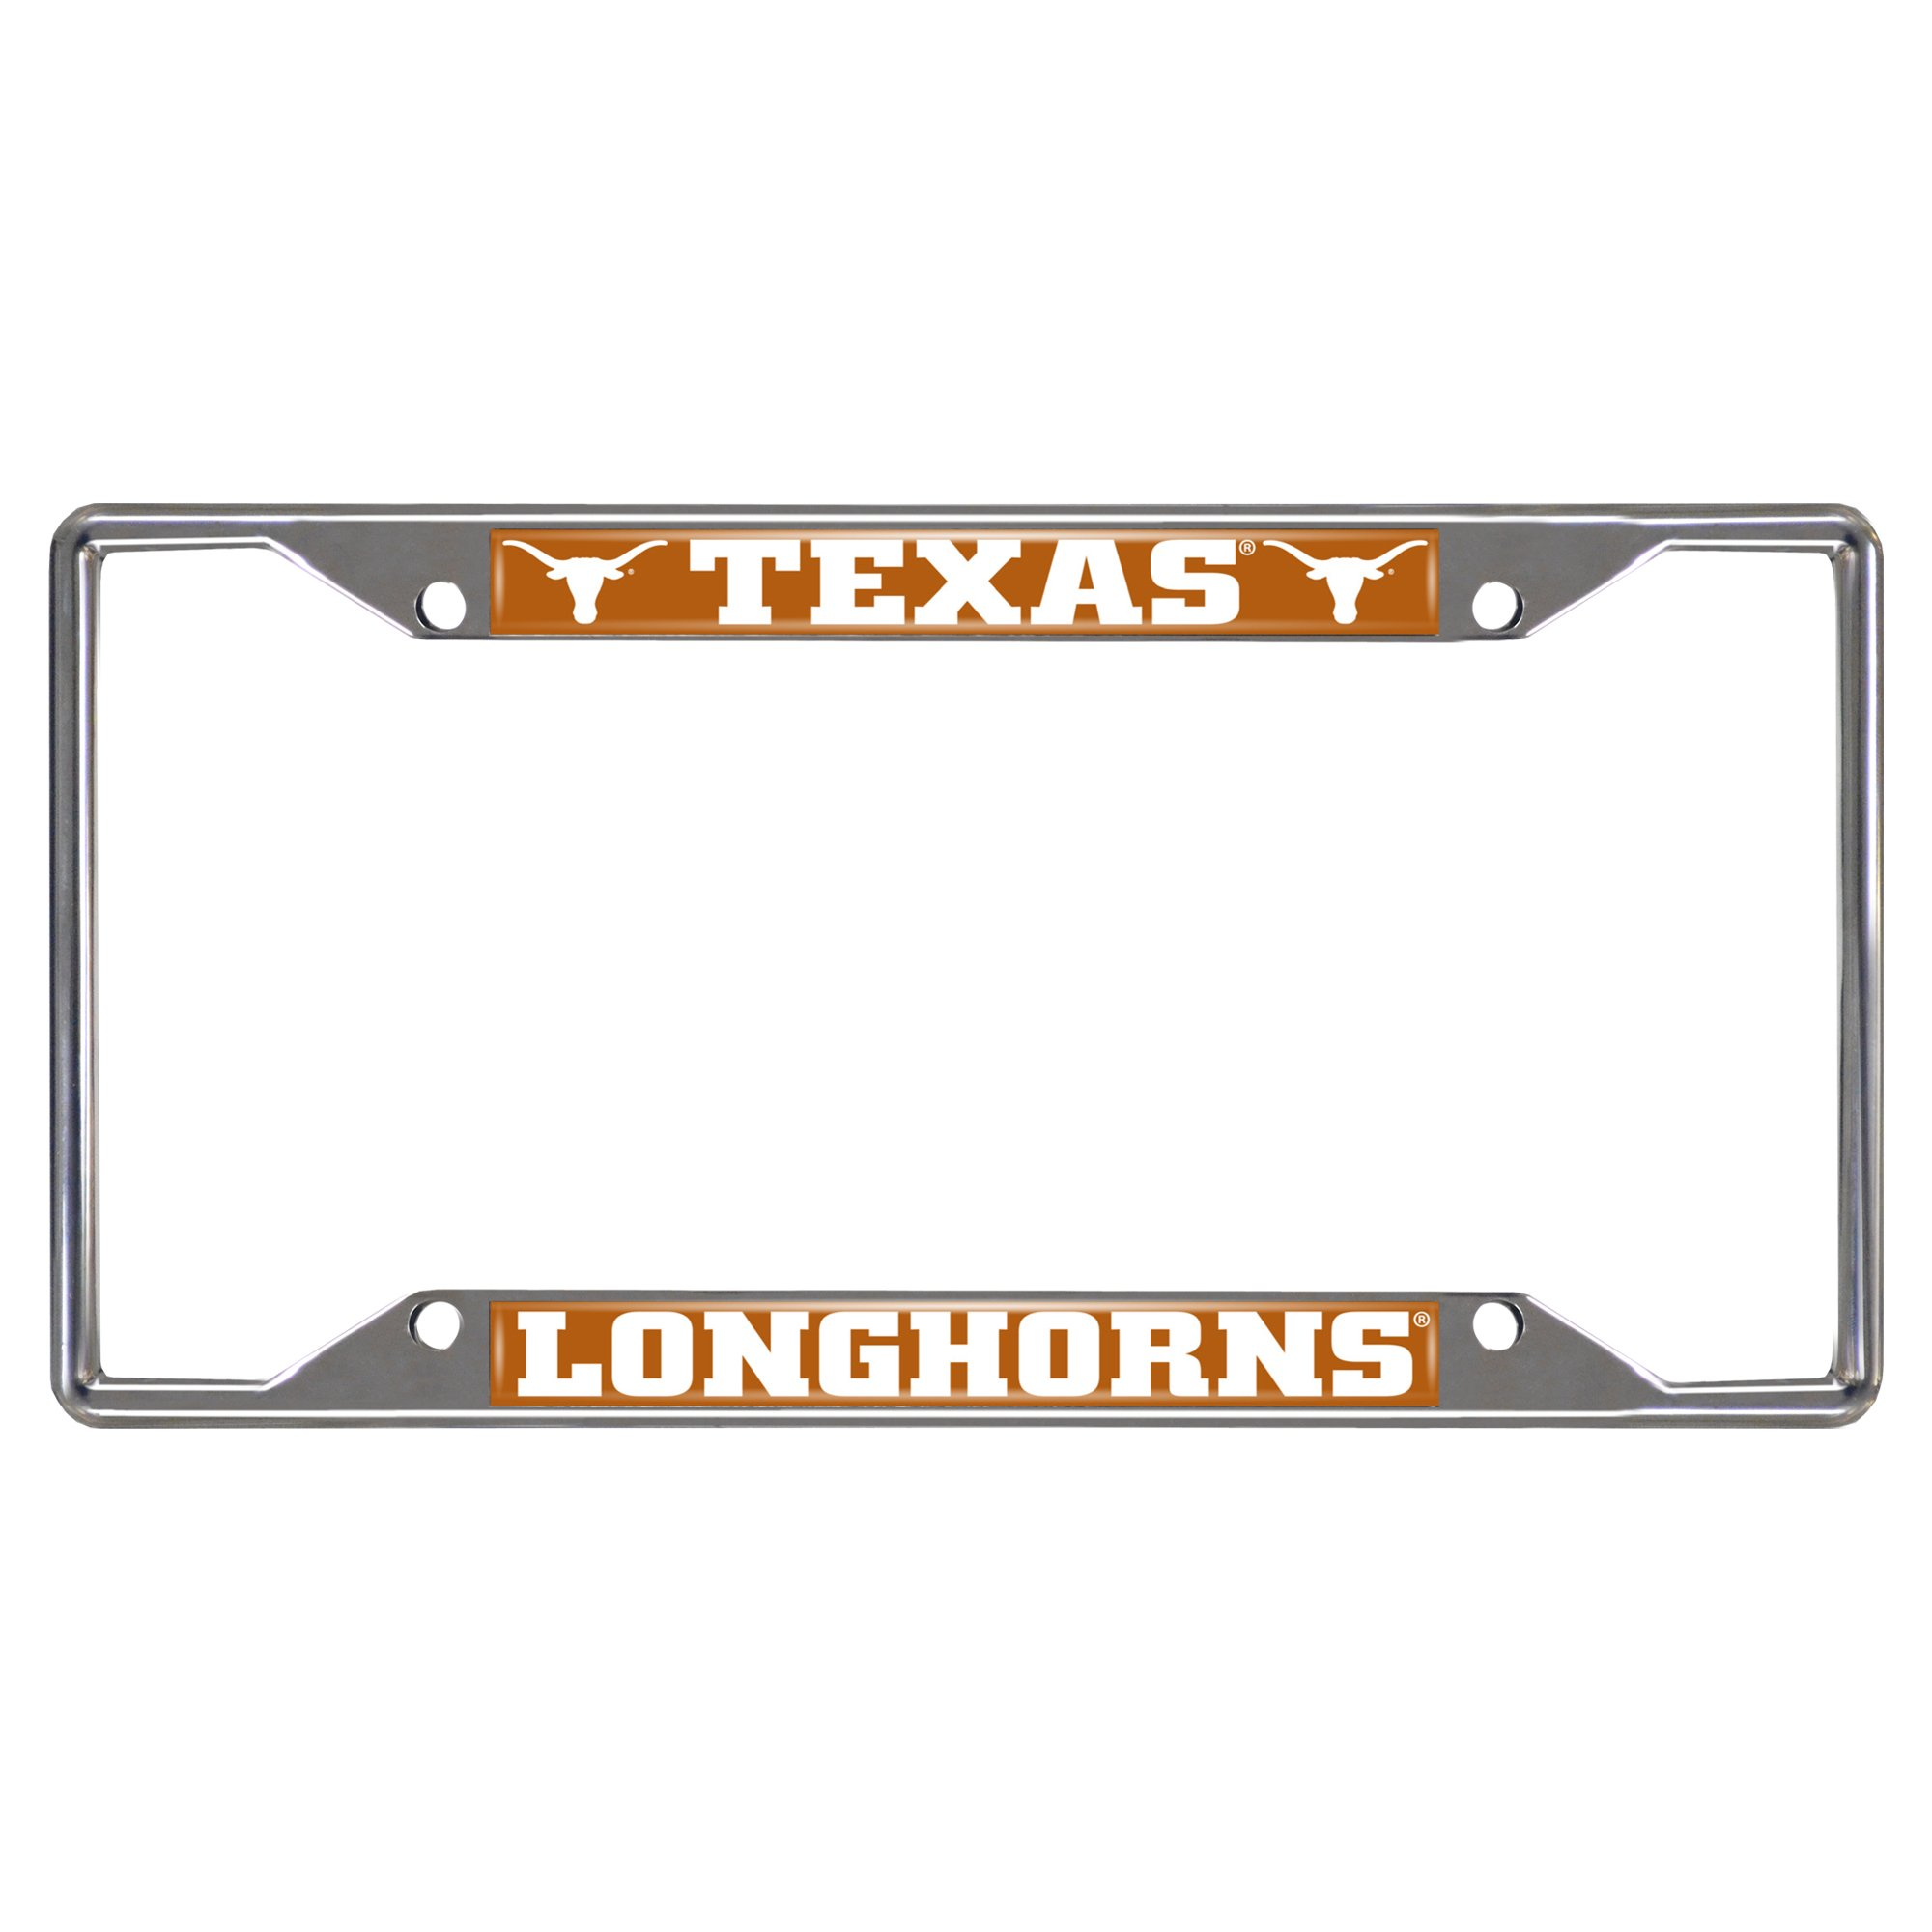 FANMATS  14826  NCAA University of Texas Longhorns Chrome License Plate Frame by Fanmats